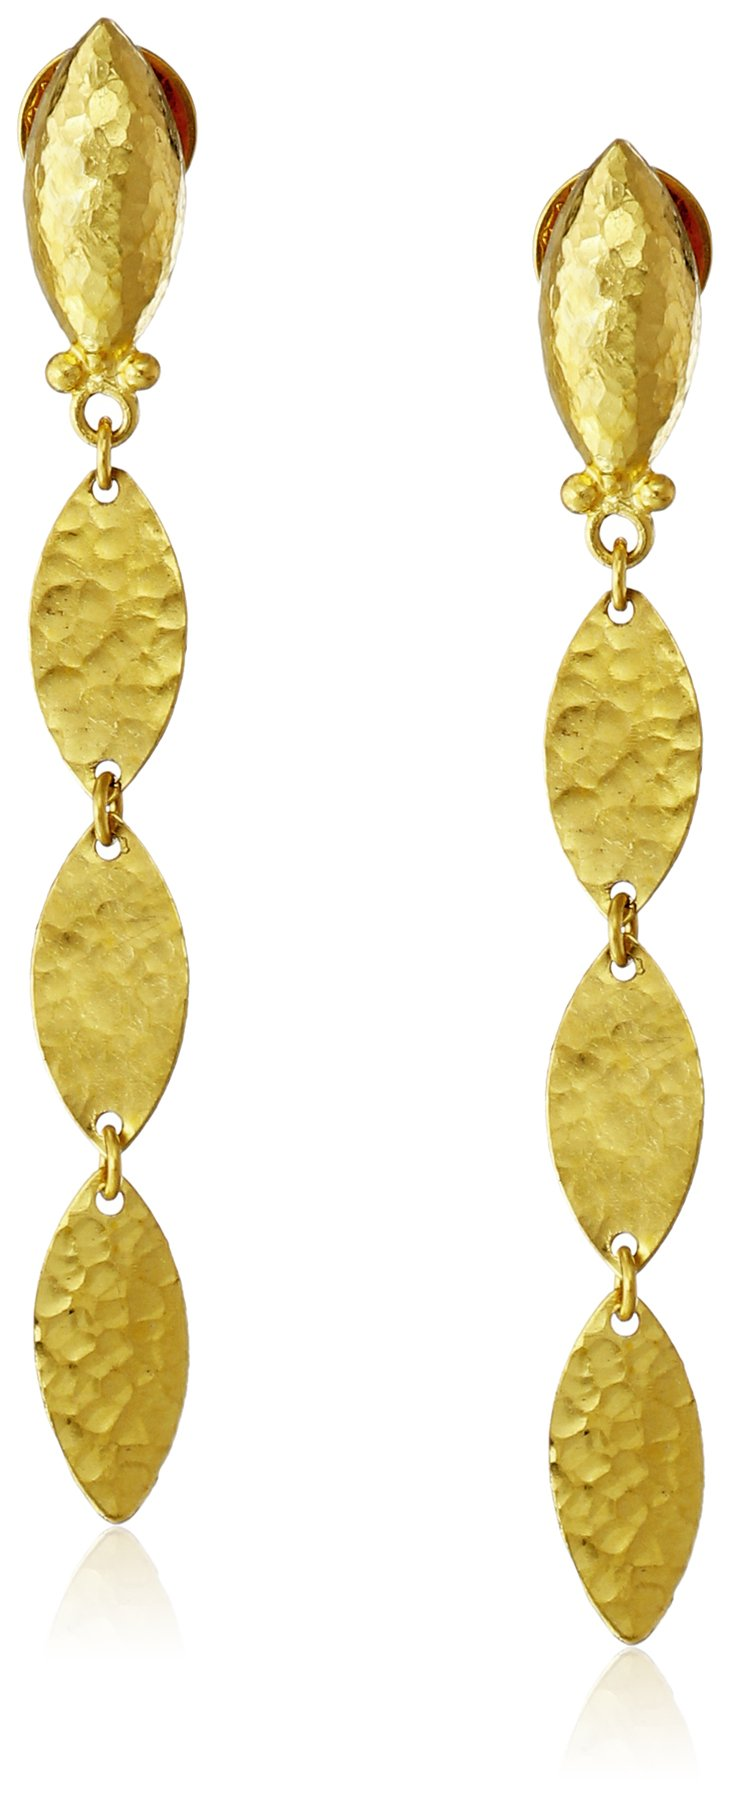 GURHAN ''Willow'' High-Karat Gold Triple Leaf Drop Earrings, 1.88''